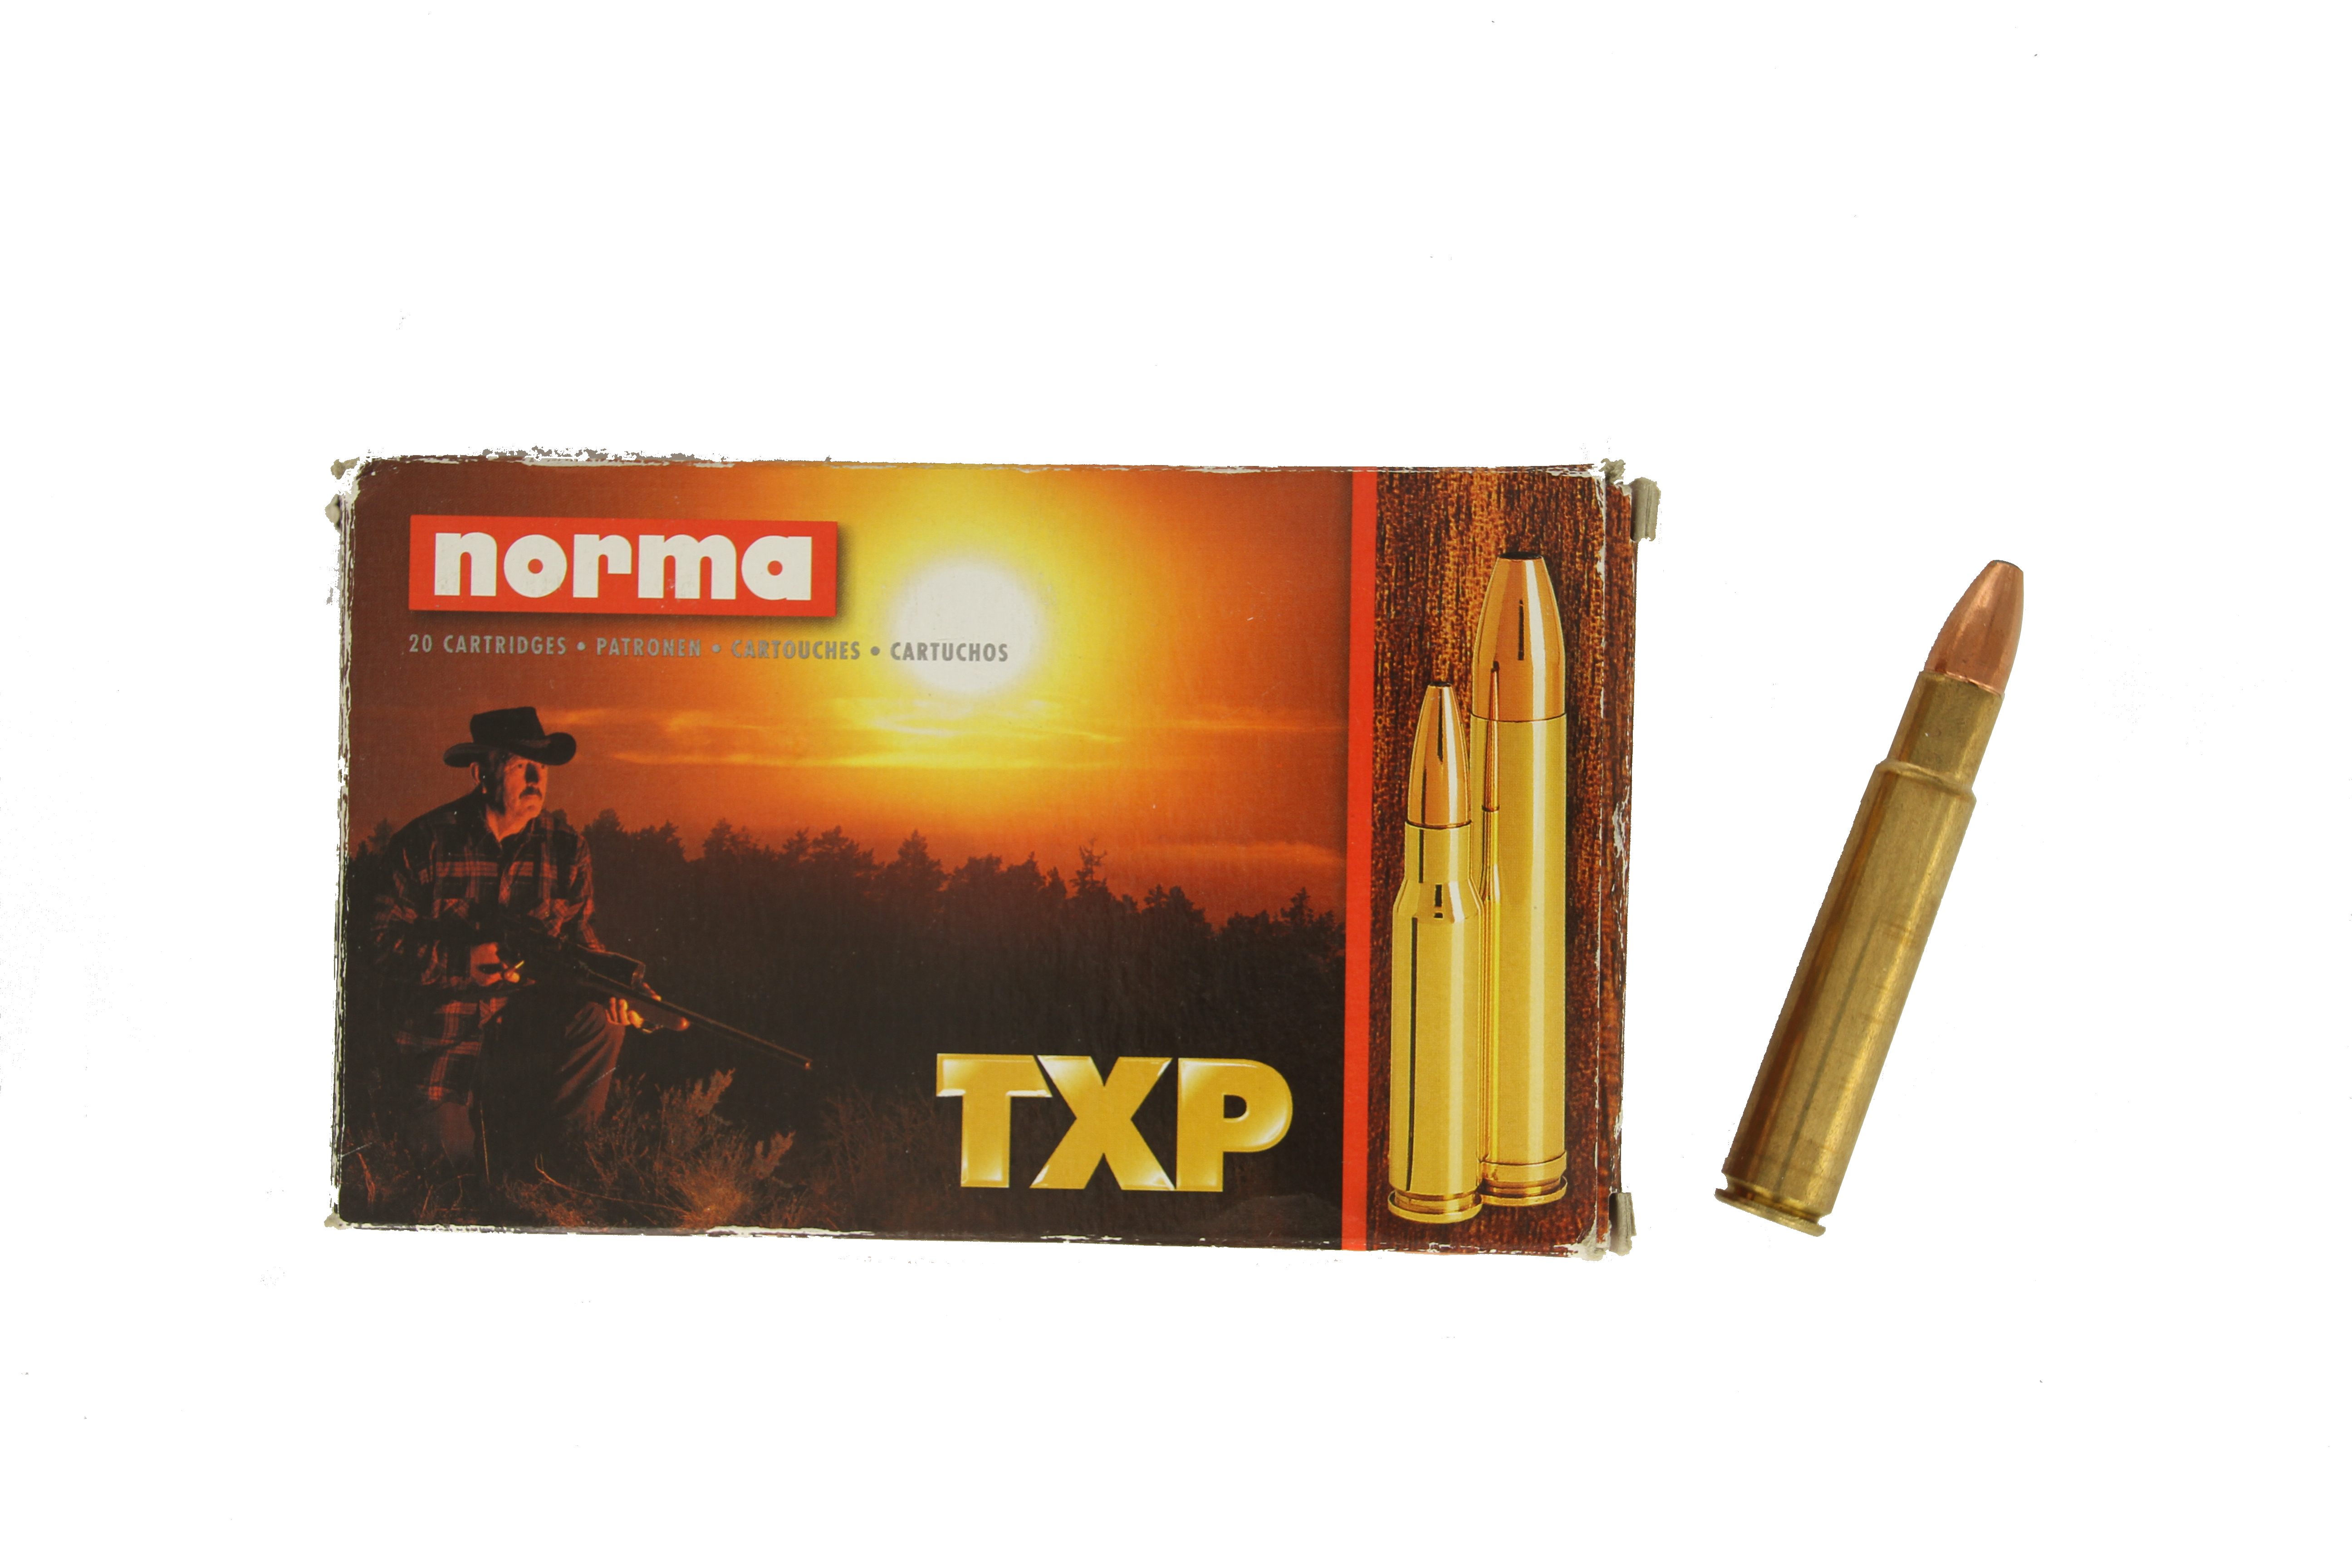 Norma .416 Rigby TXP